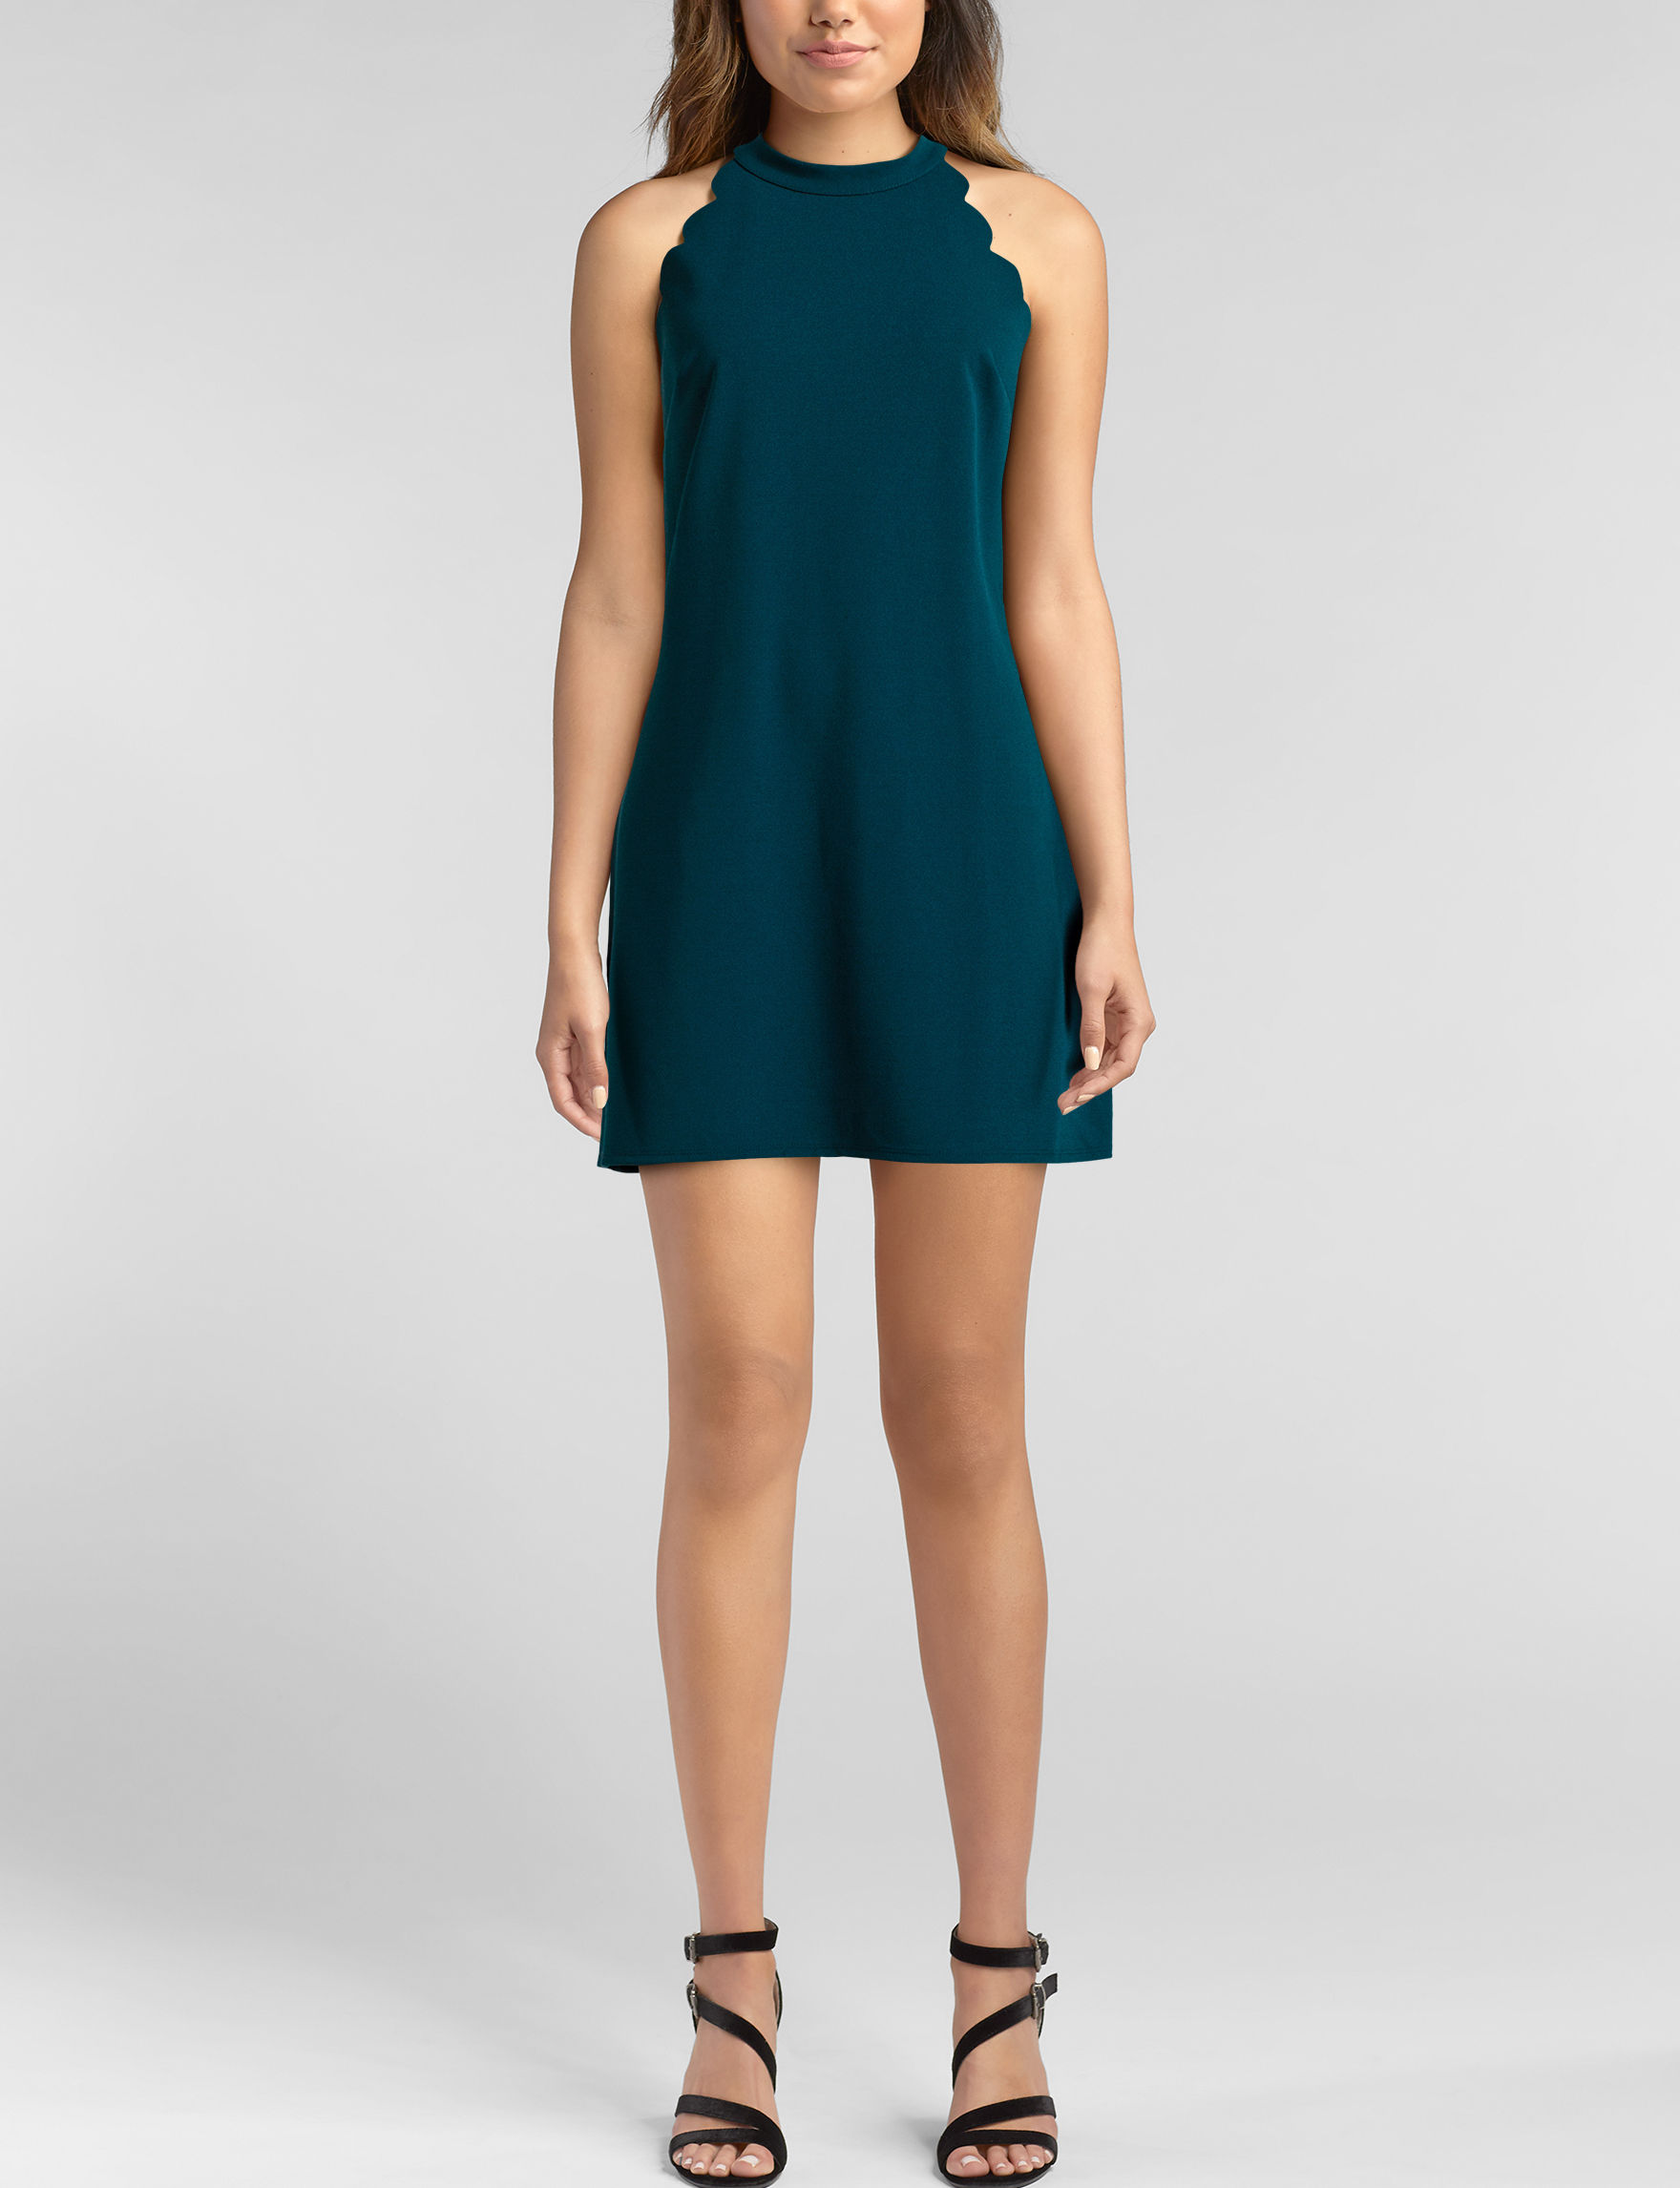 A. Byer Teal Cocktail & Party Fit & Flare Dresses